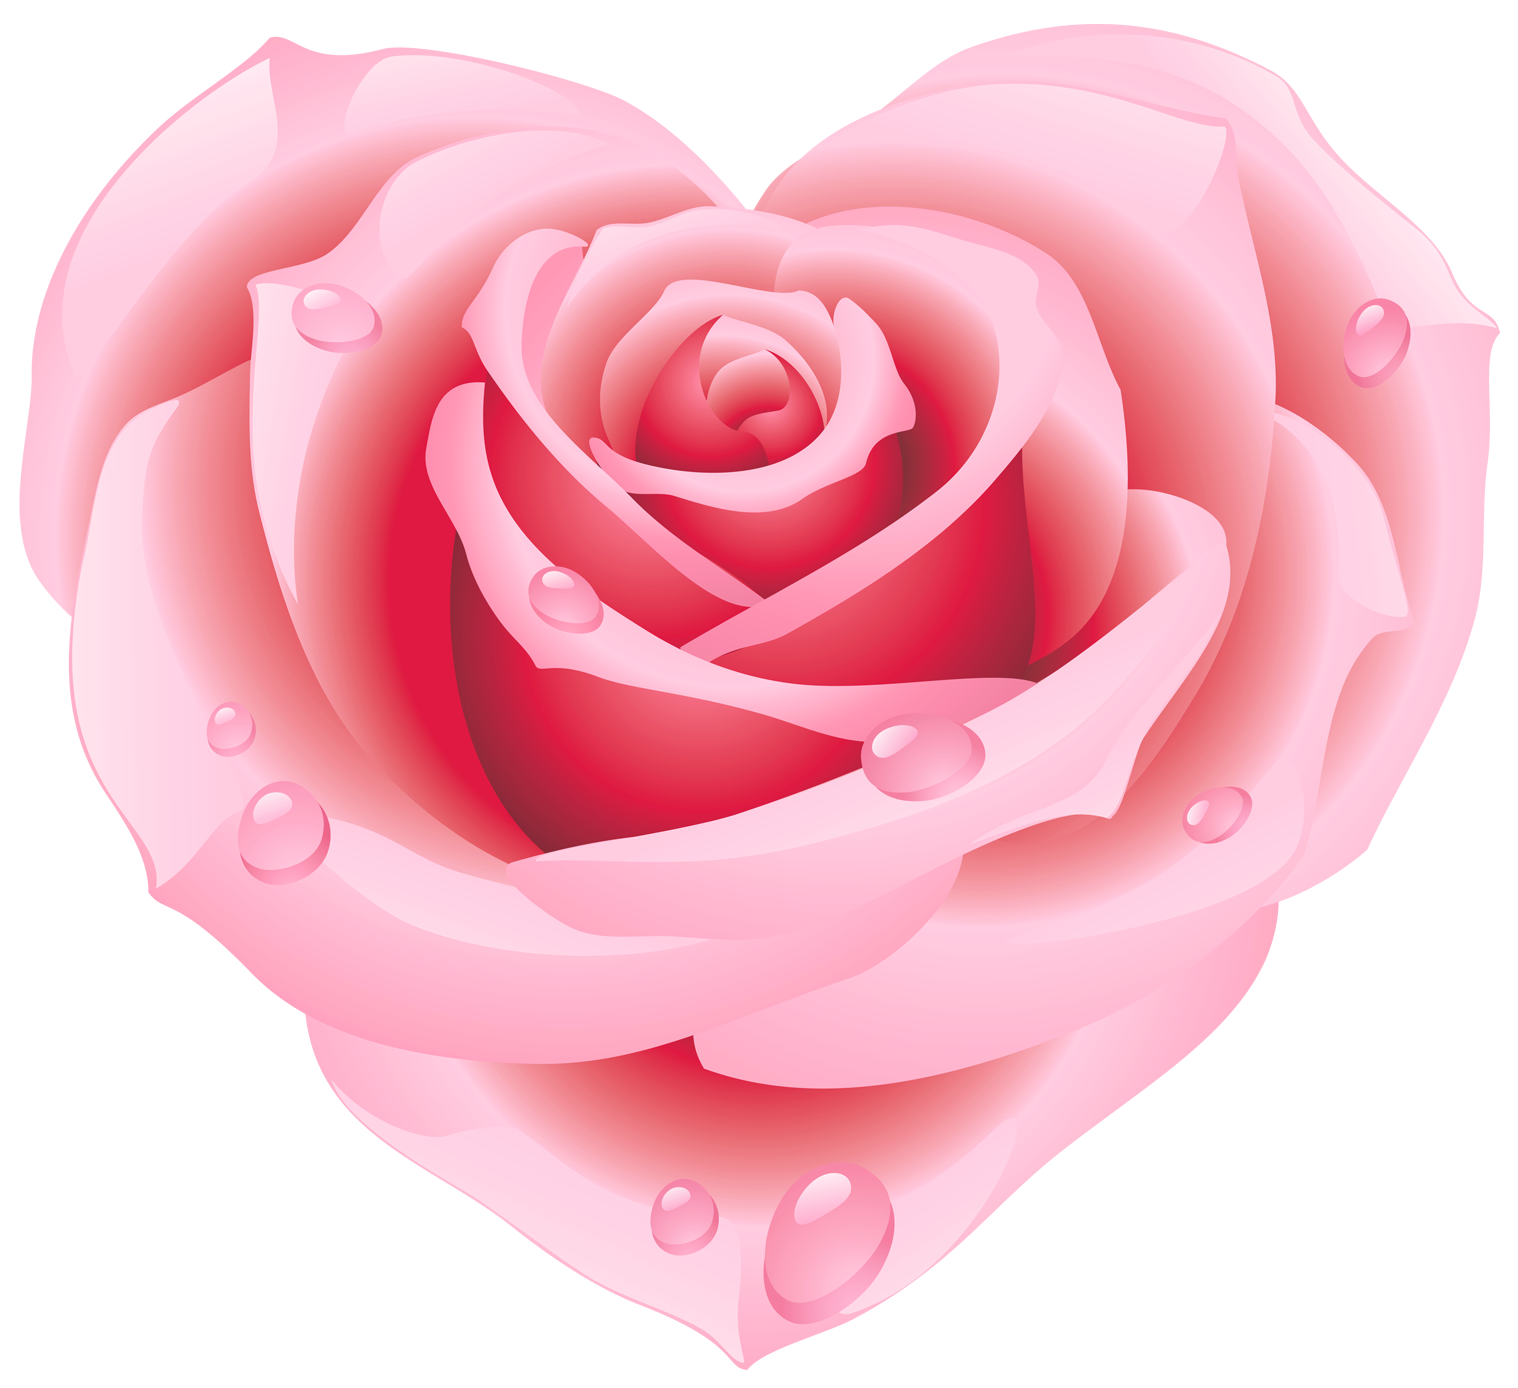 Large pink rose heart. Clipart roses shape